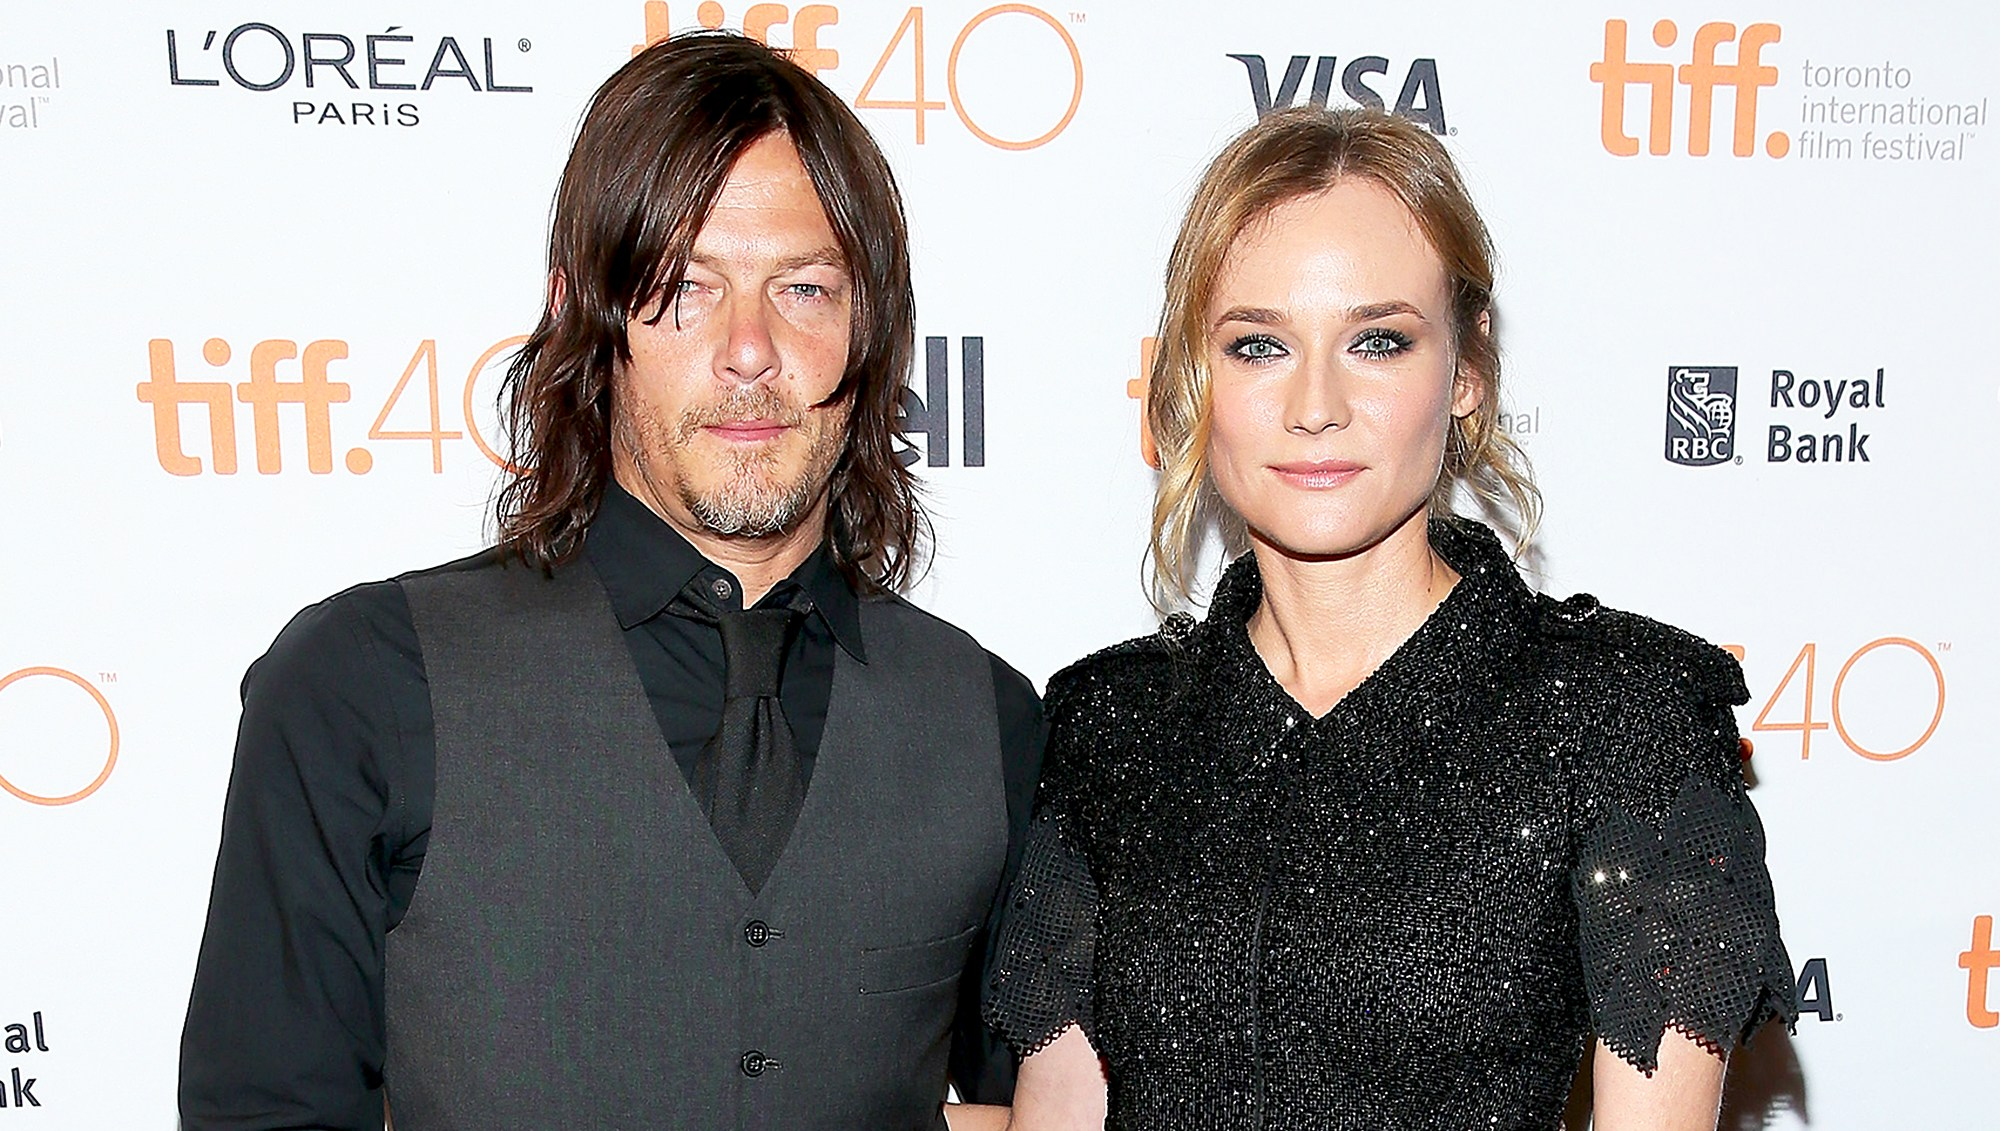 Norman Reedus and Diane Kruger attend the 2015 Toronto International Film Festival at The Elgin in Toronto, Canada.